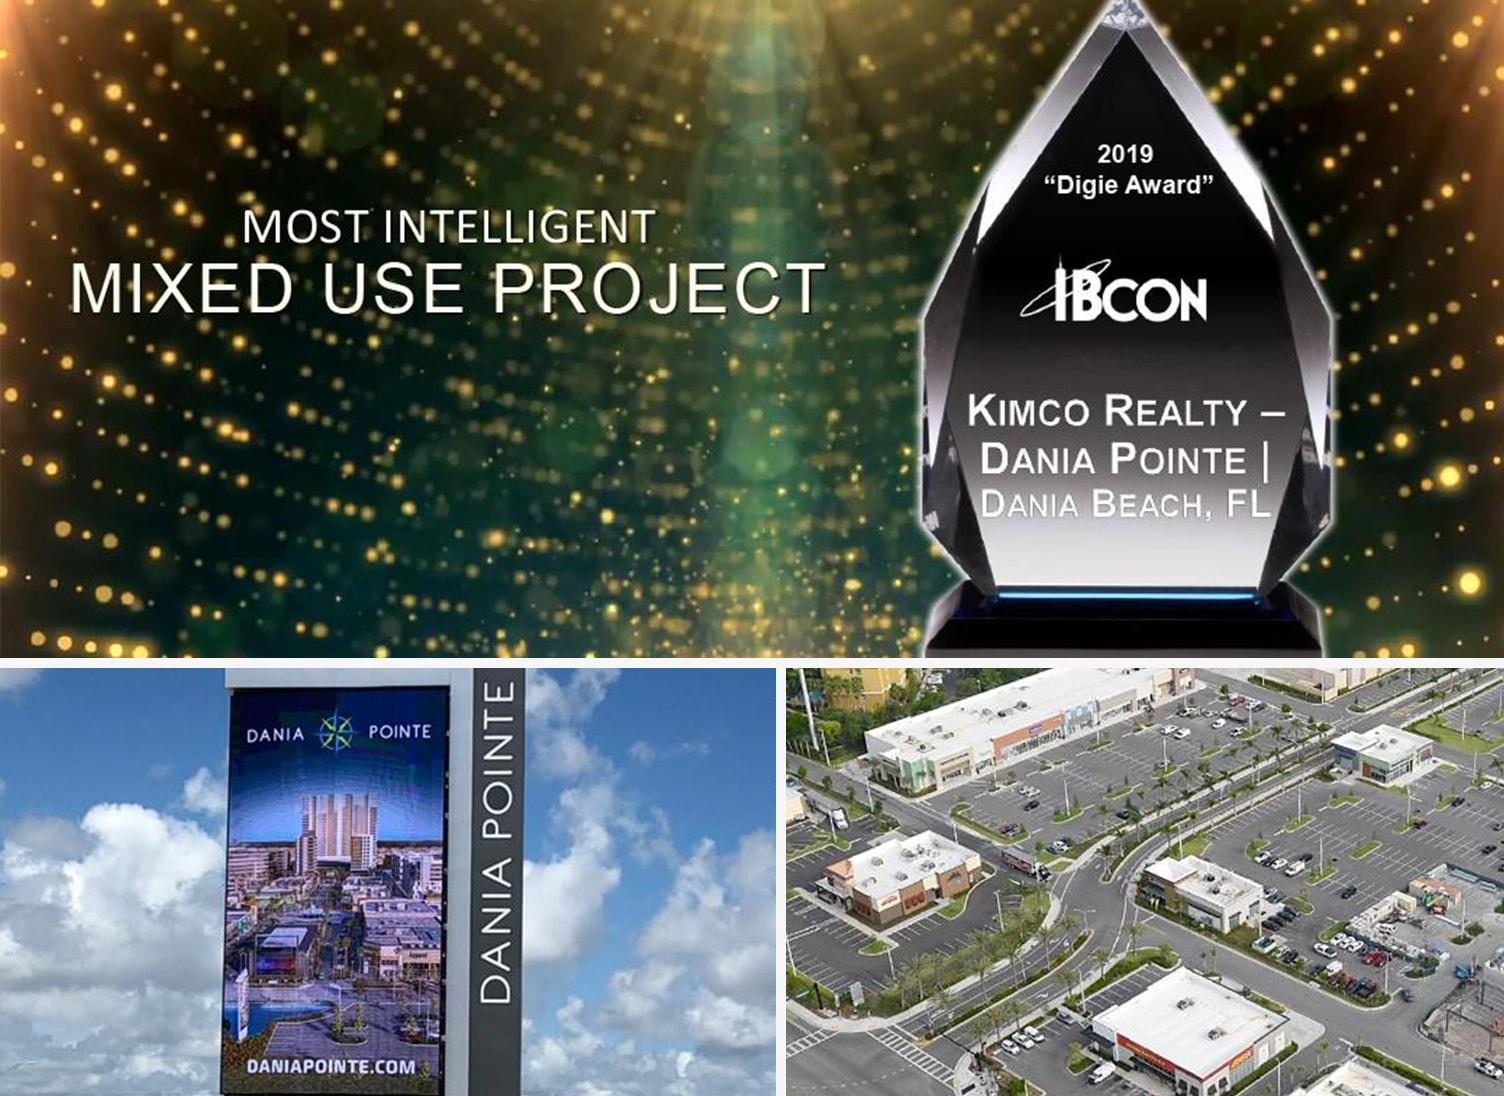 ibcon award for dania pointe